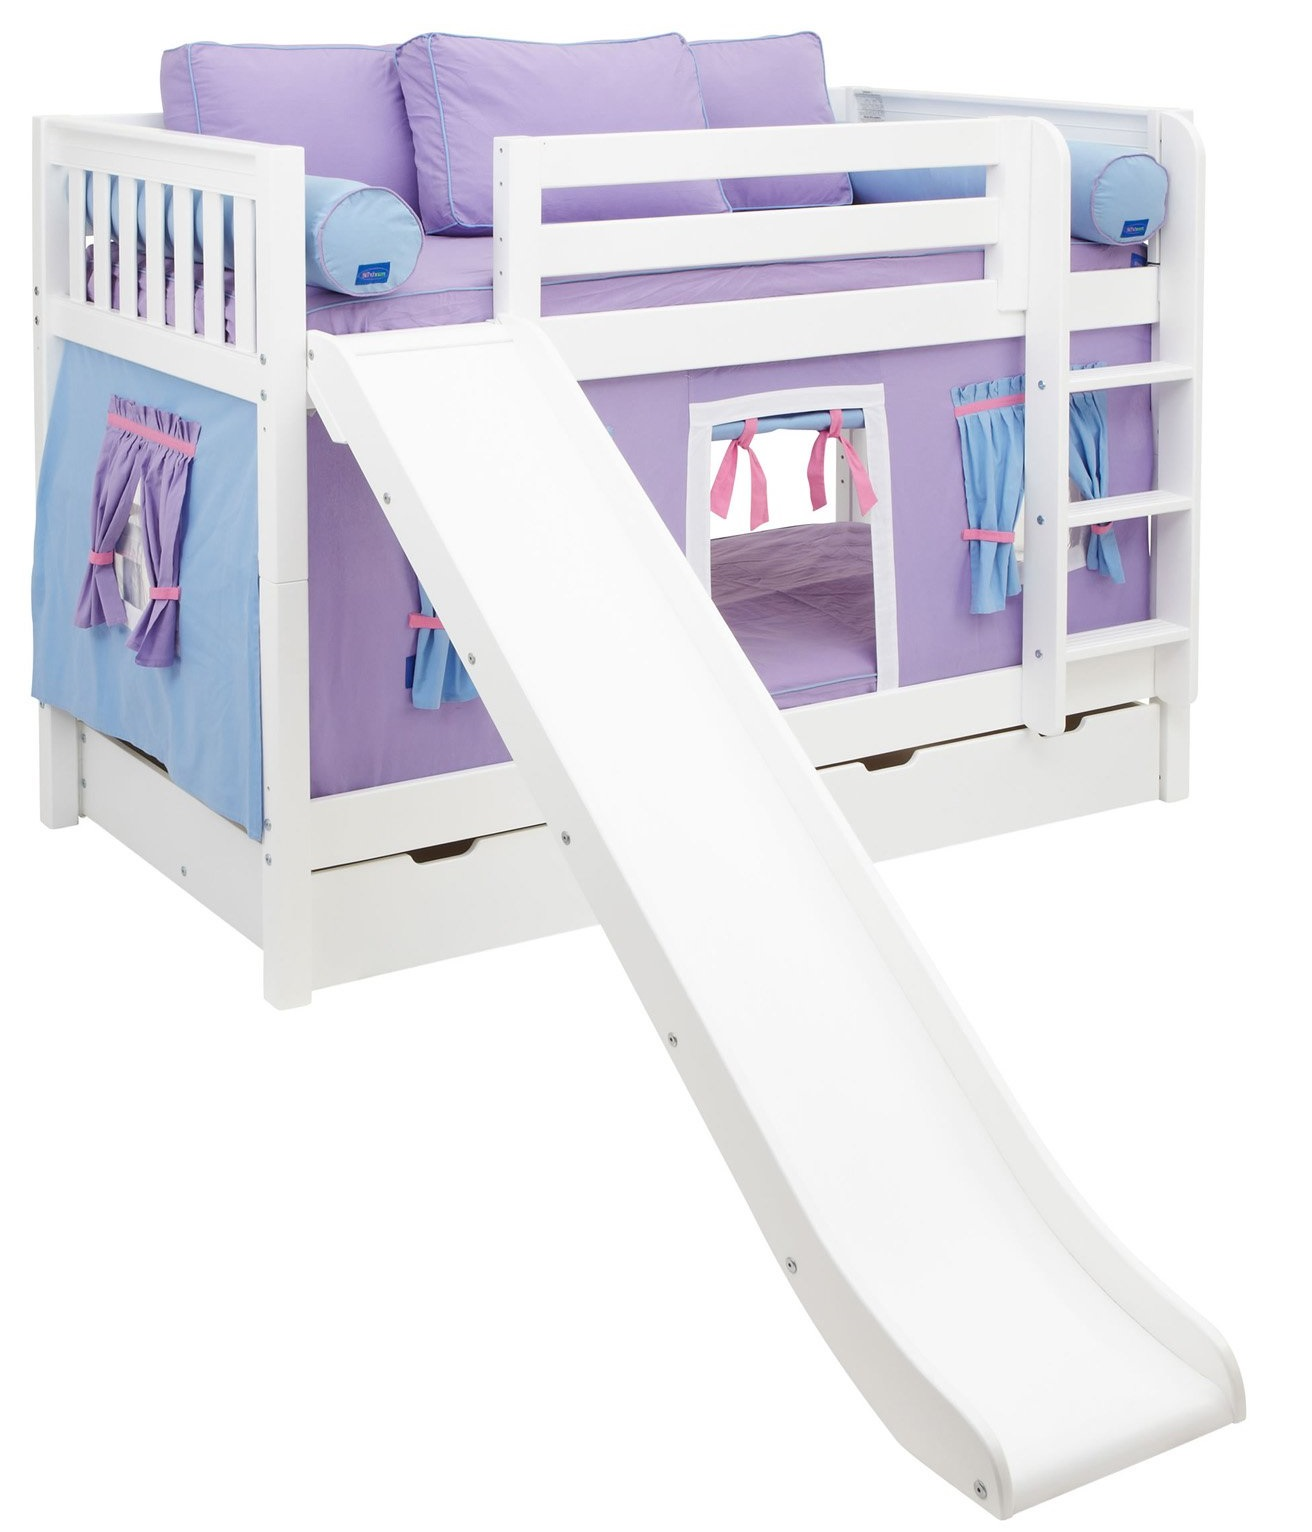 Bunk bed with slide for girls - Smile Girl Twin Over Twin Slat Tent Bunk Bed